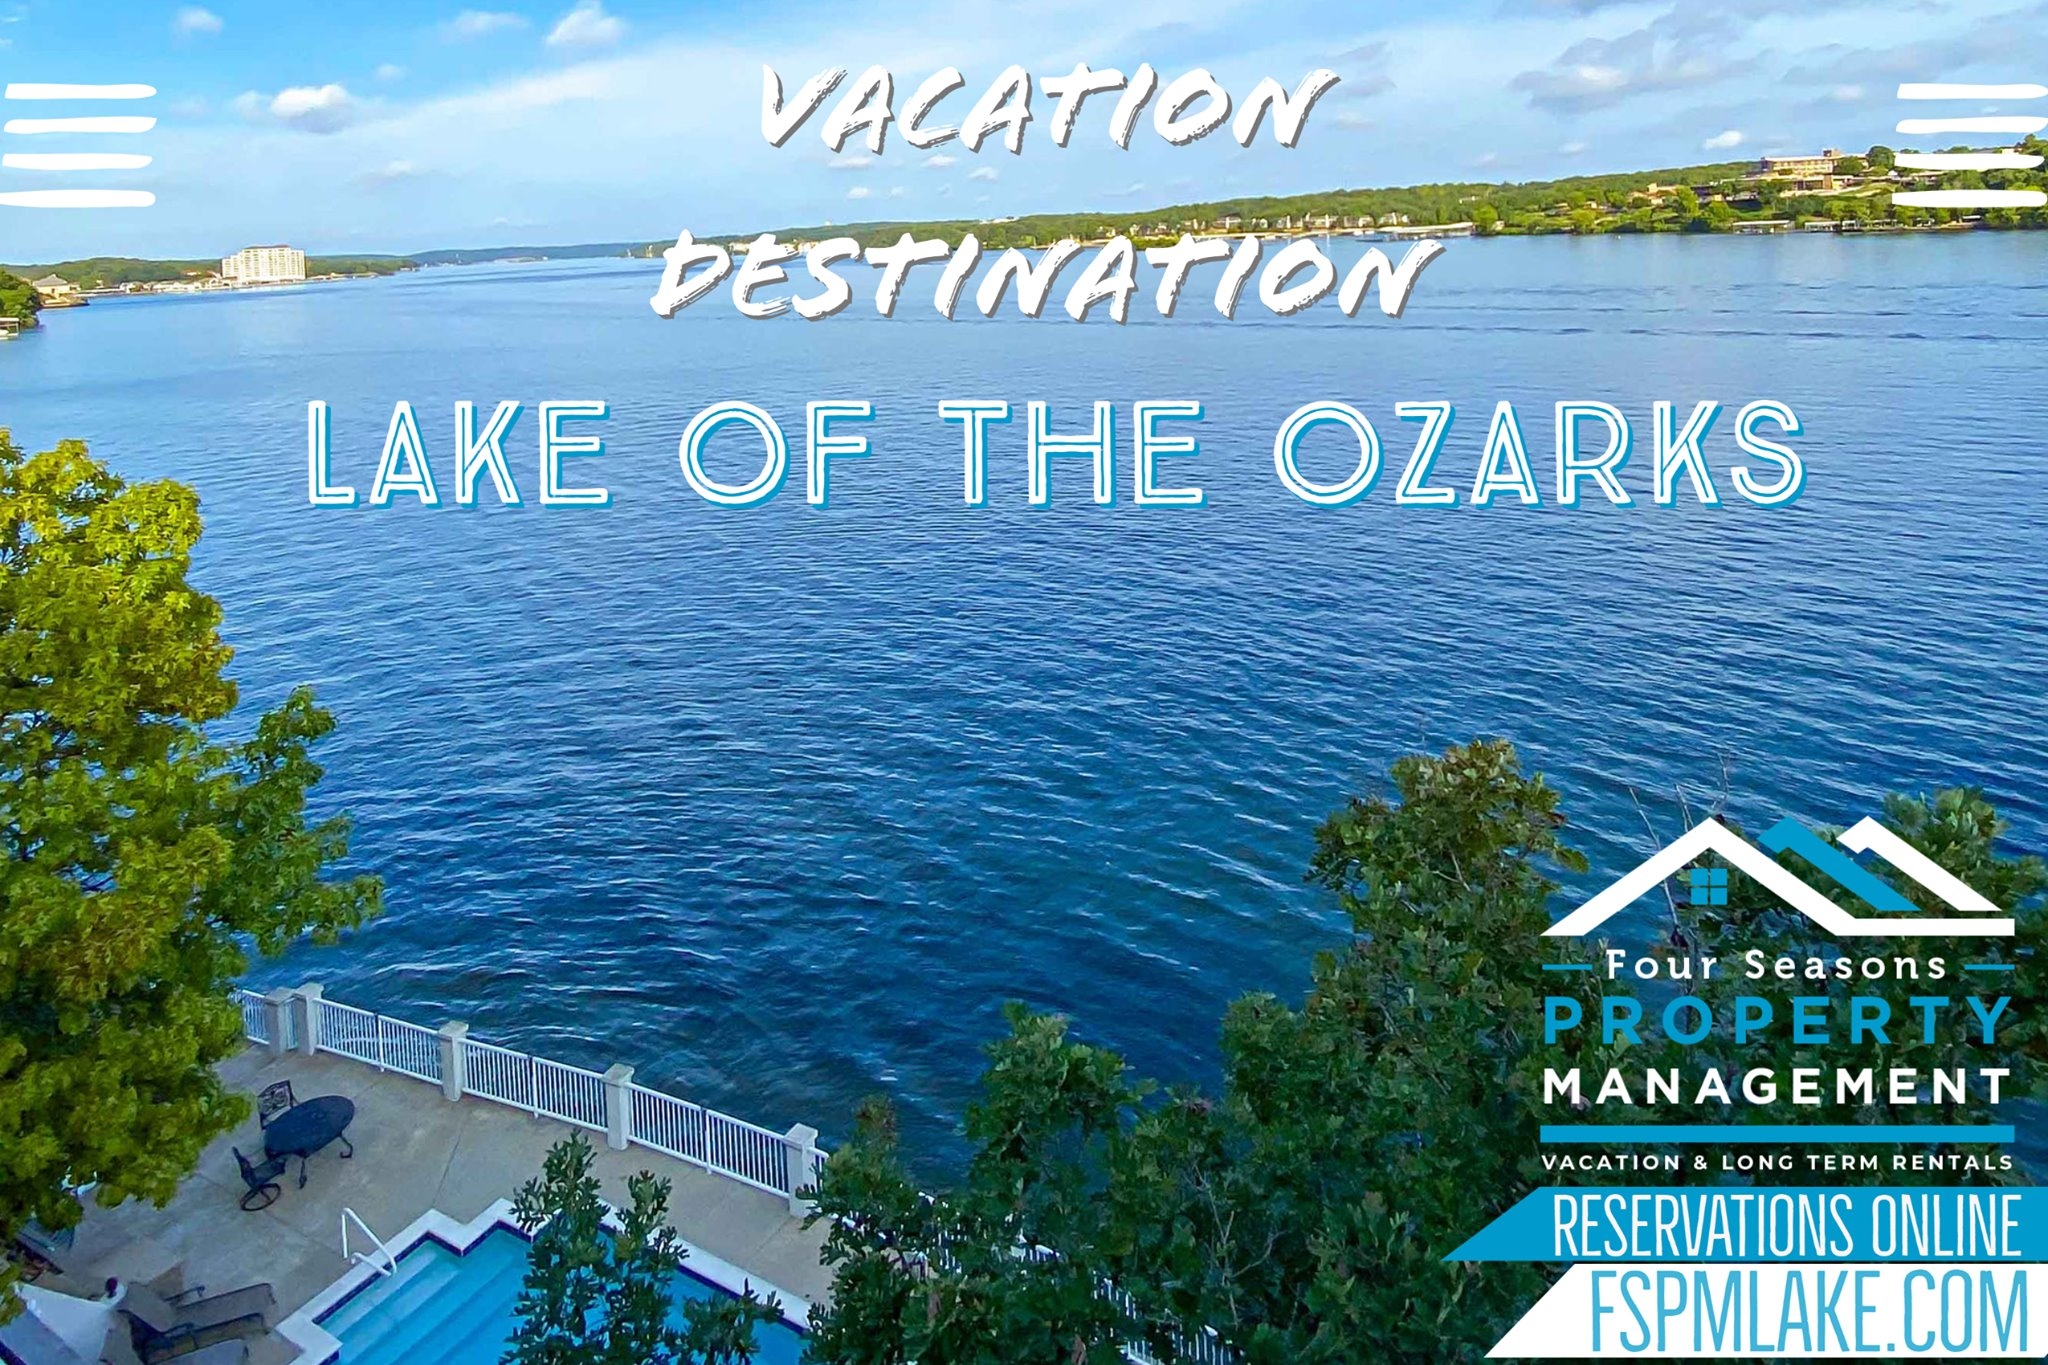 Four Seasons Property Management Vacation Rental Properties throughout the Lake of the Ozarks Missouri